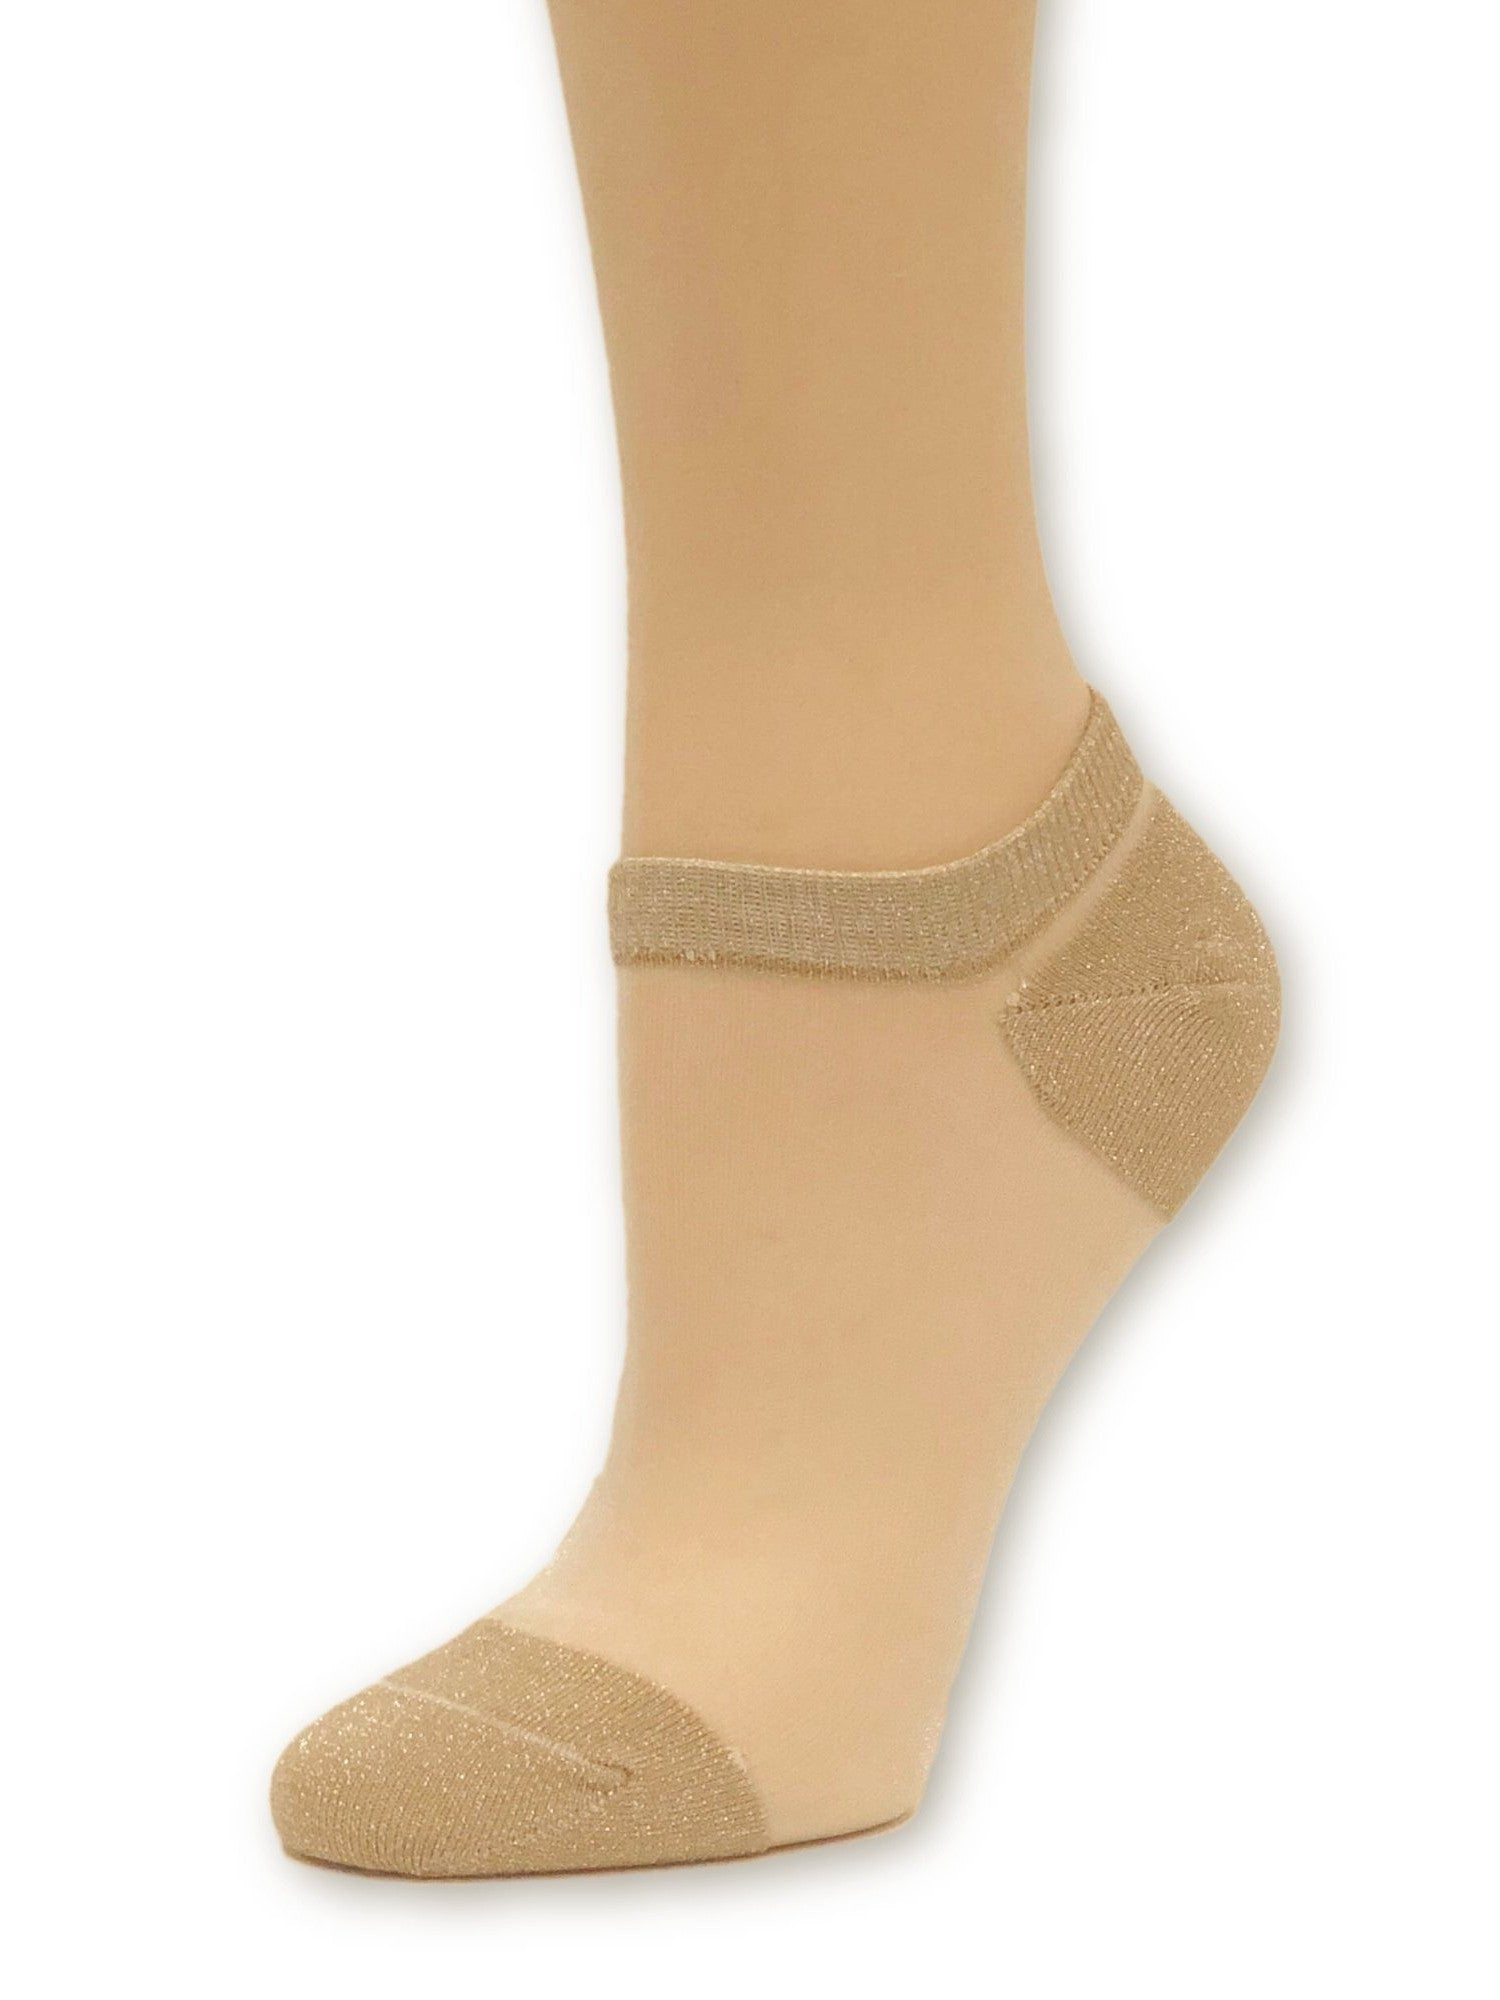 Light Gold Glittered Ankle Sheer Socks - Global Trendz Fashion®